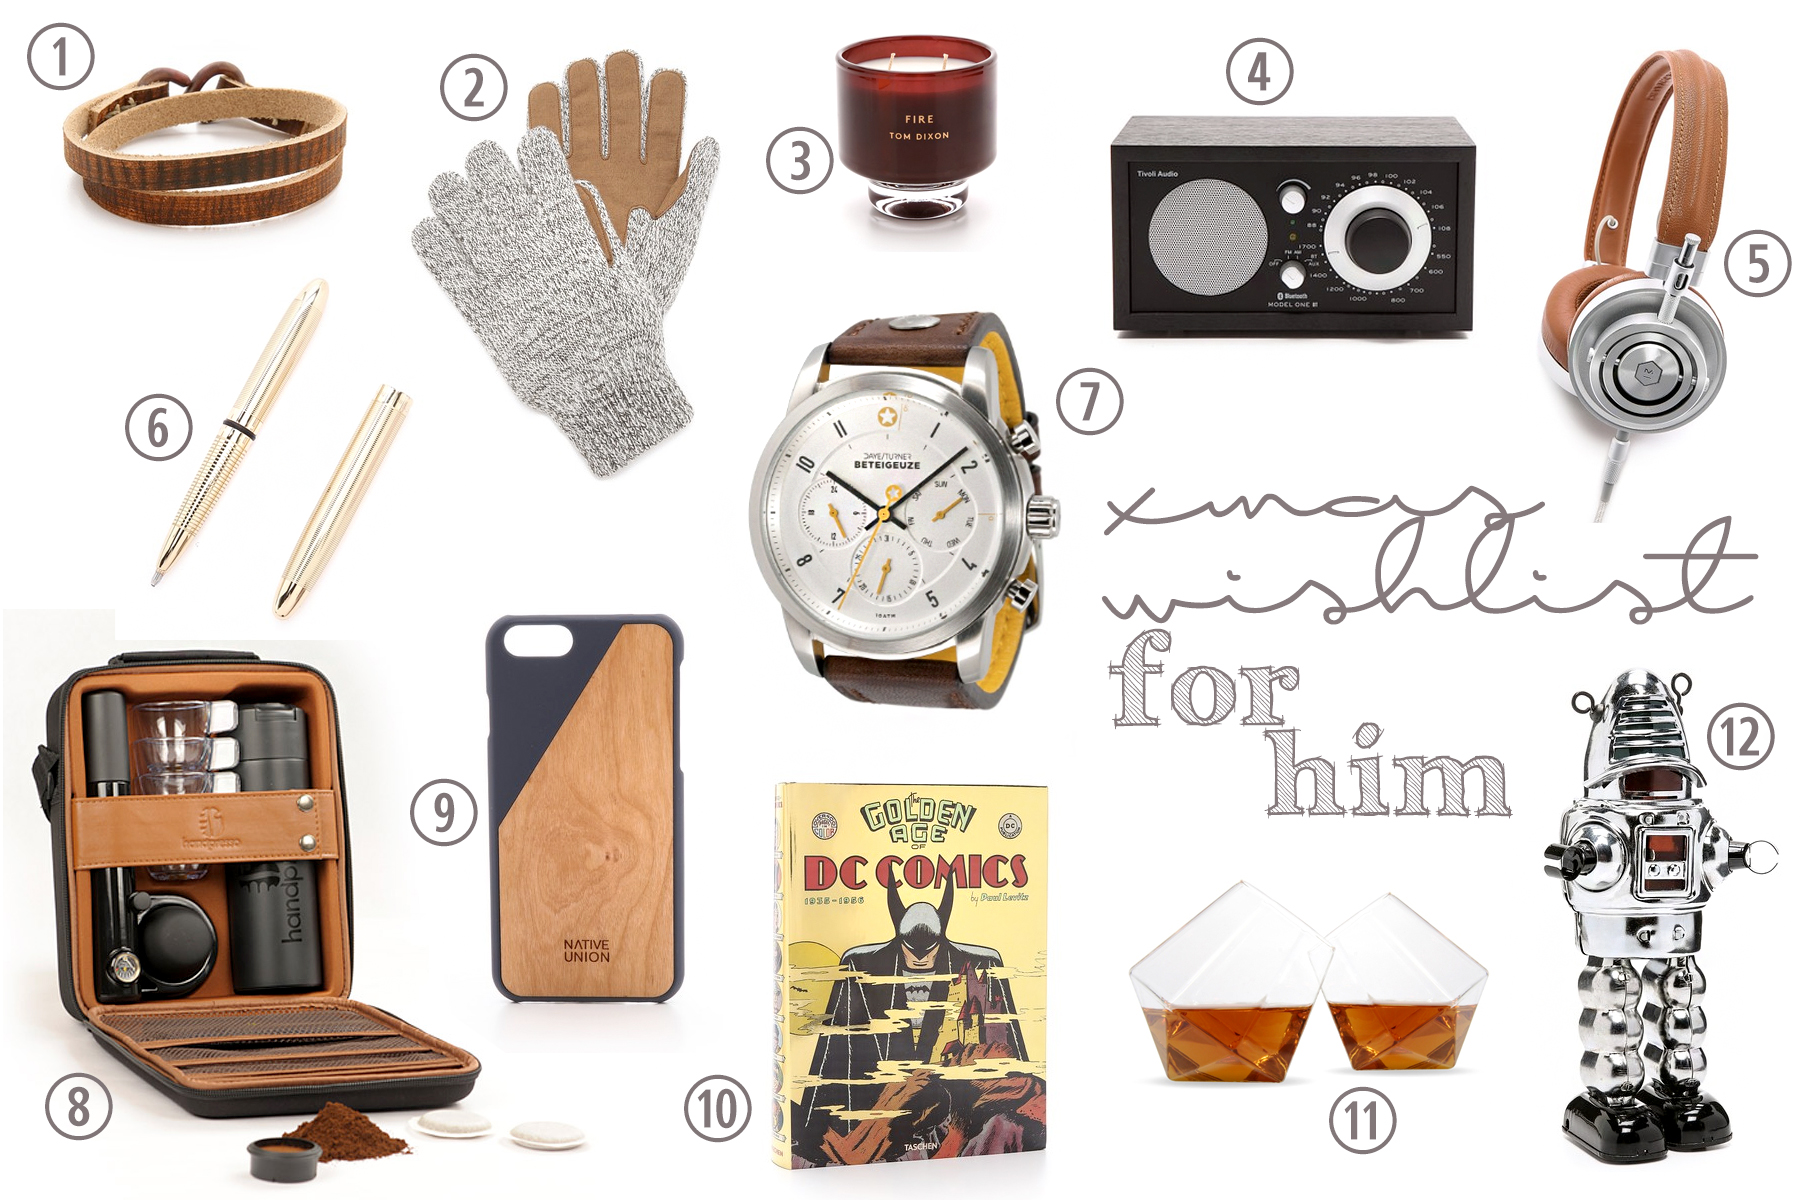 day/turner watch christmas shopping inspiration shopbop dmax espresso machine radio men männer weihnachtsgeschenke inspiration collage wishlist cats & dogs fashionblogger ricarda schernus modeblog